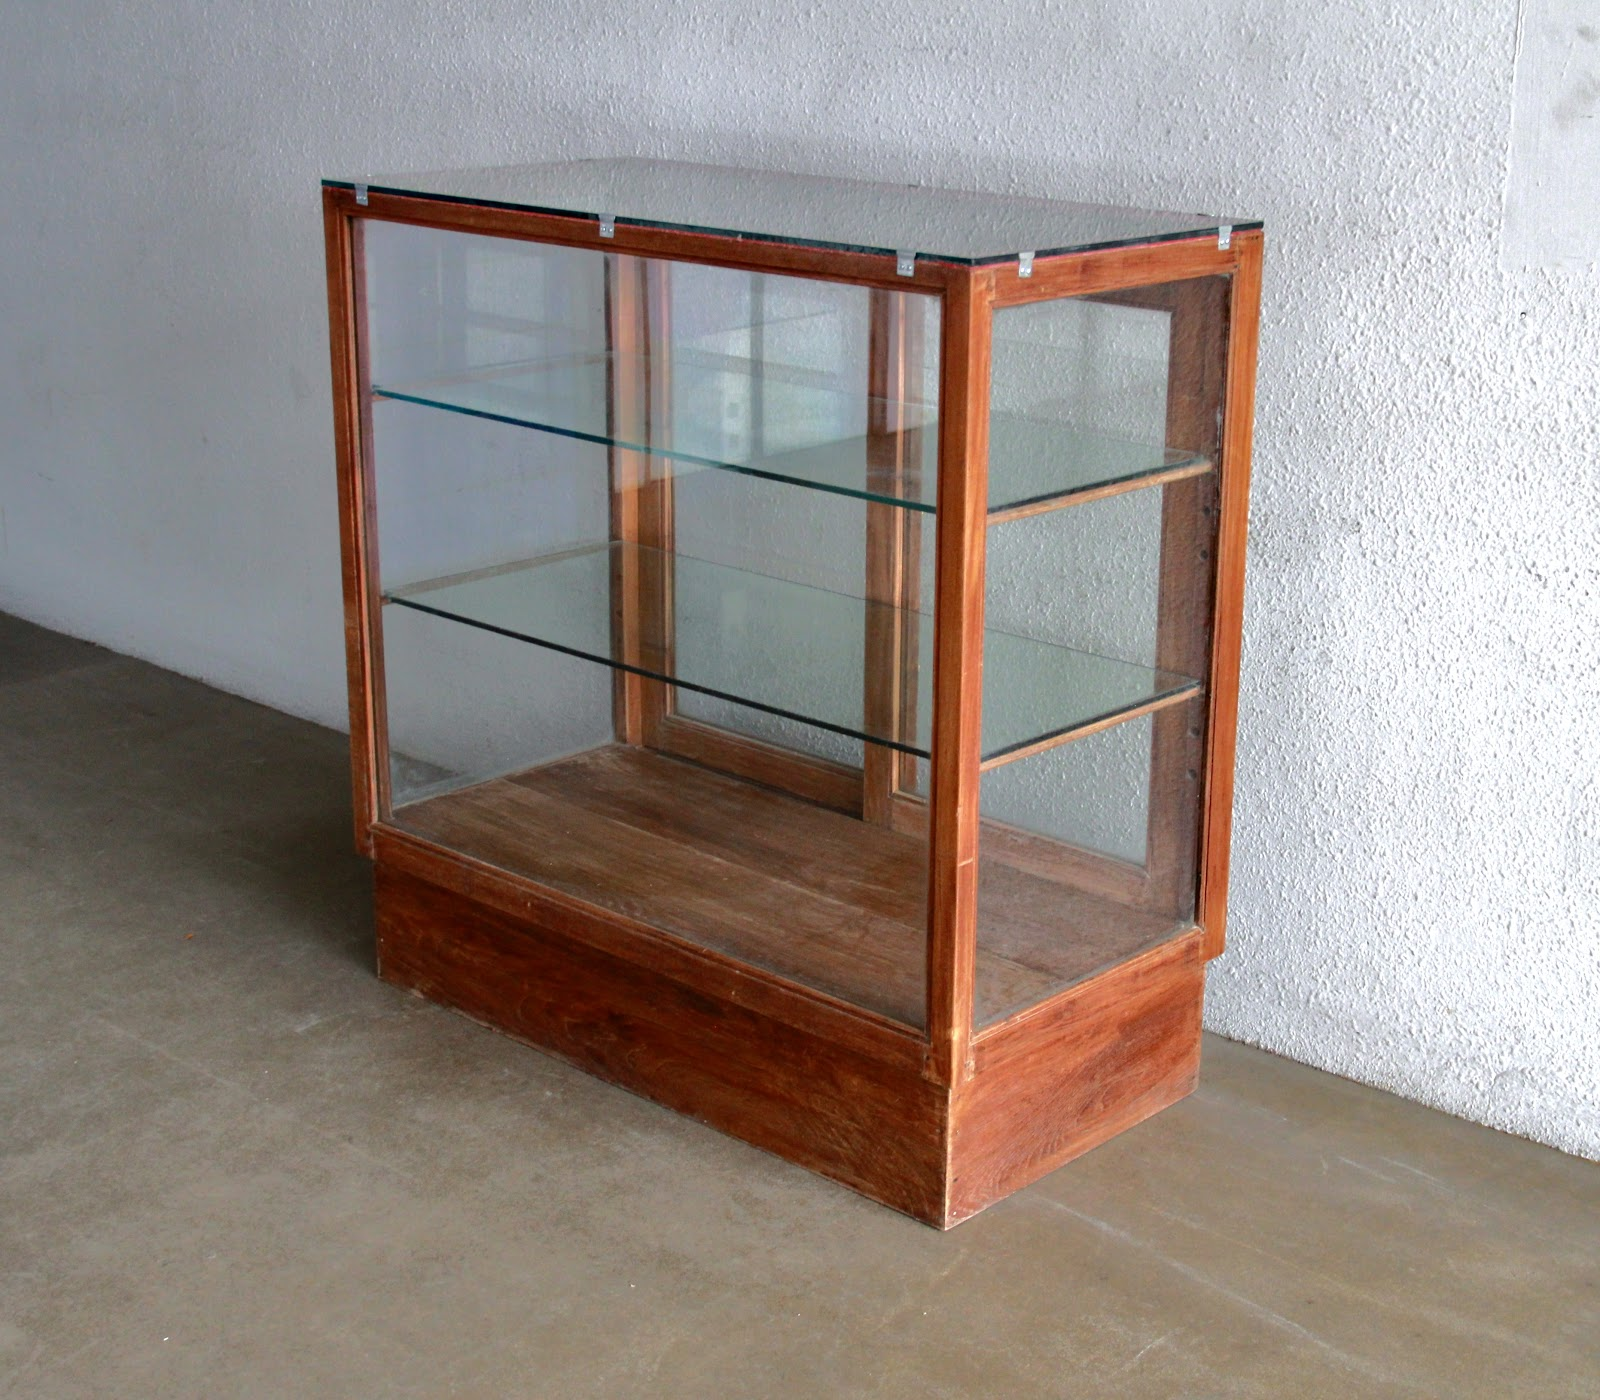 6345e9331f95 Vintage Showcases And Display Cabinets Ashley Furniture